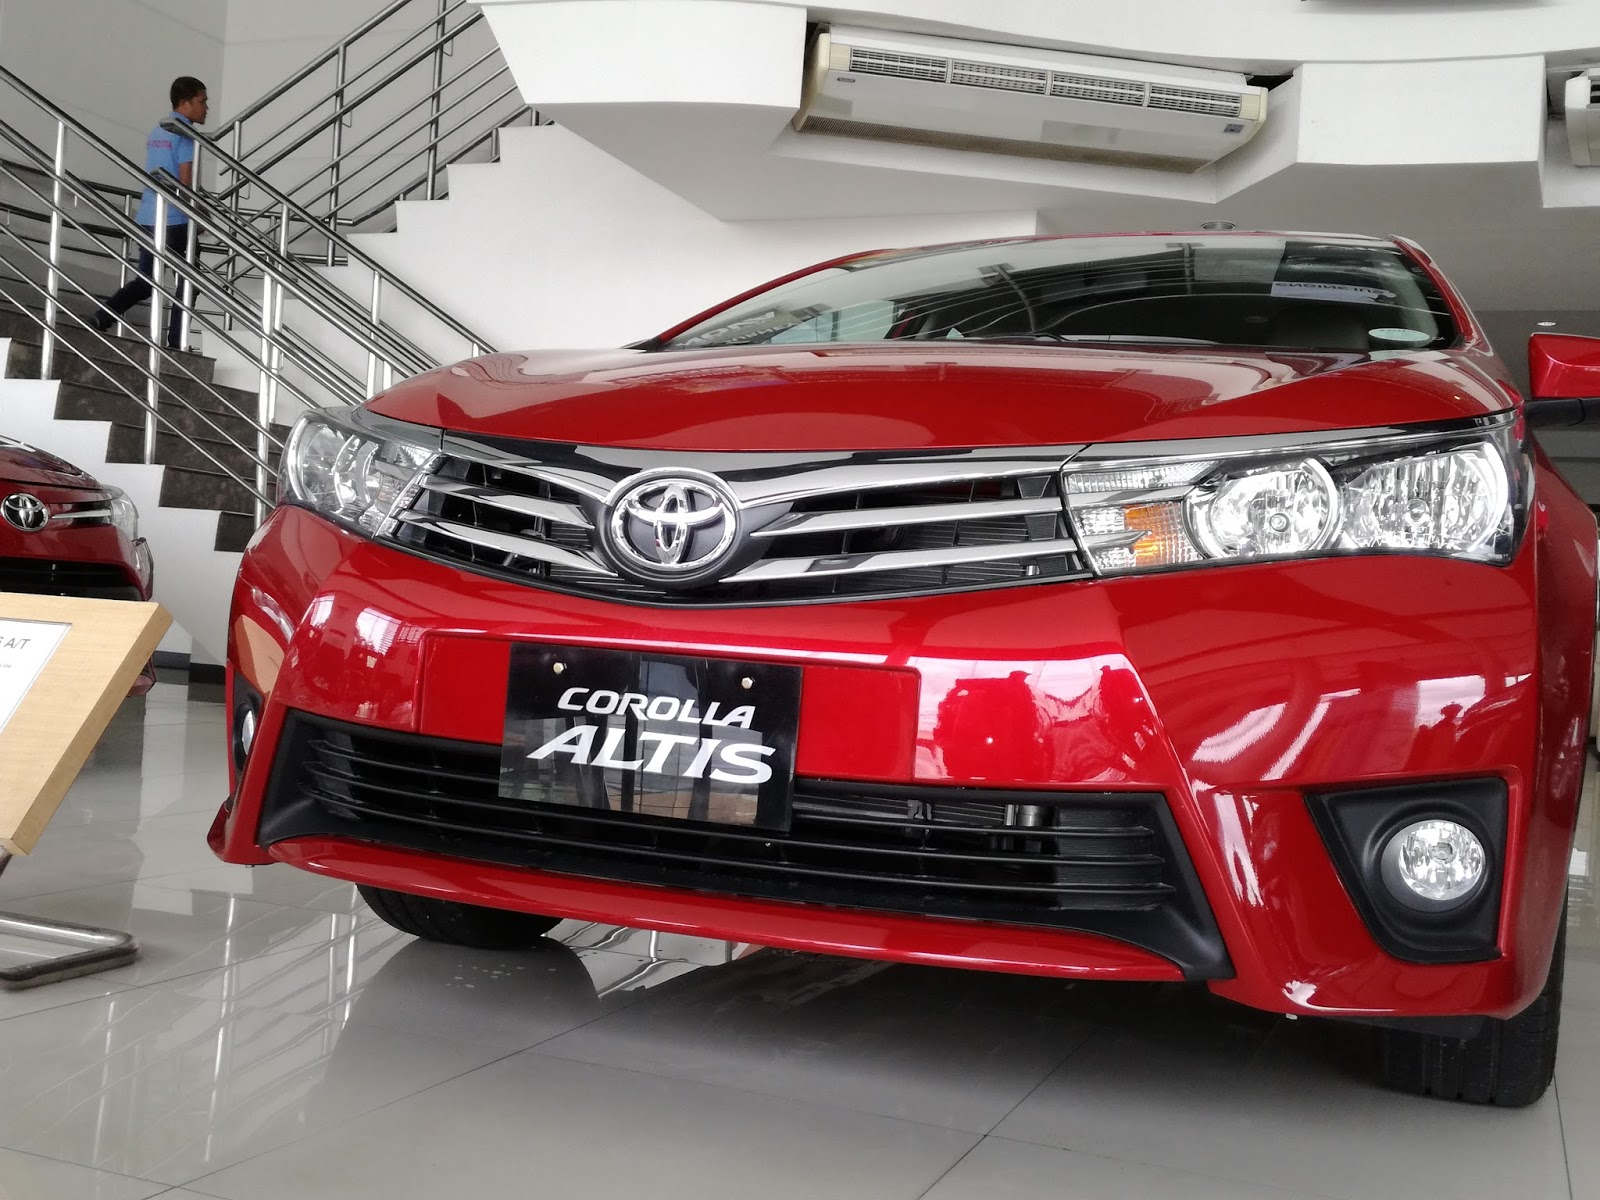 find out if the new waku doki dna that toyota has infused into the car can deliver the heart pounting excitement that the company is driving for